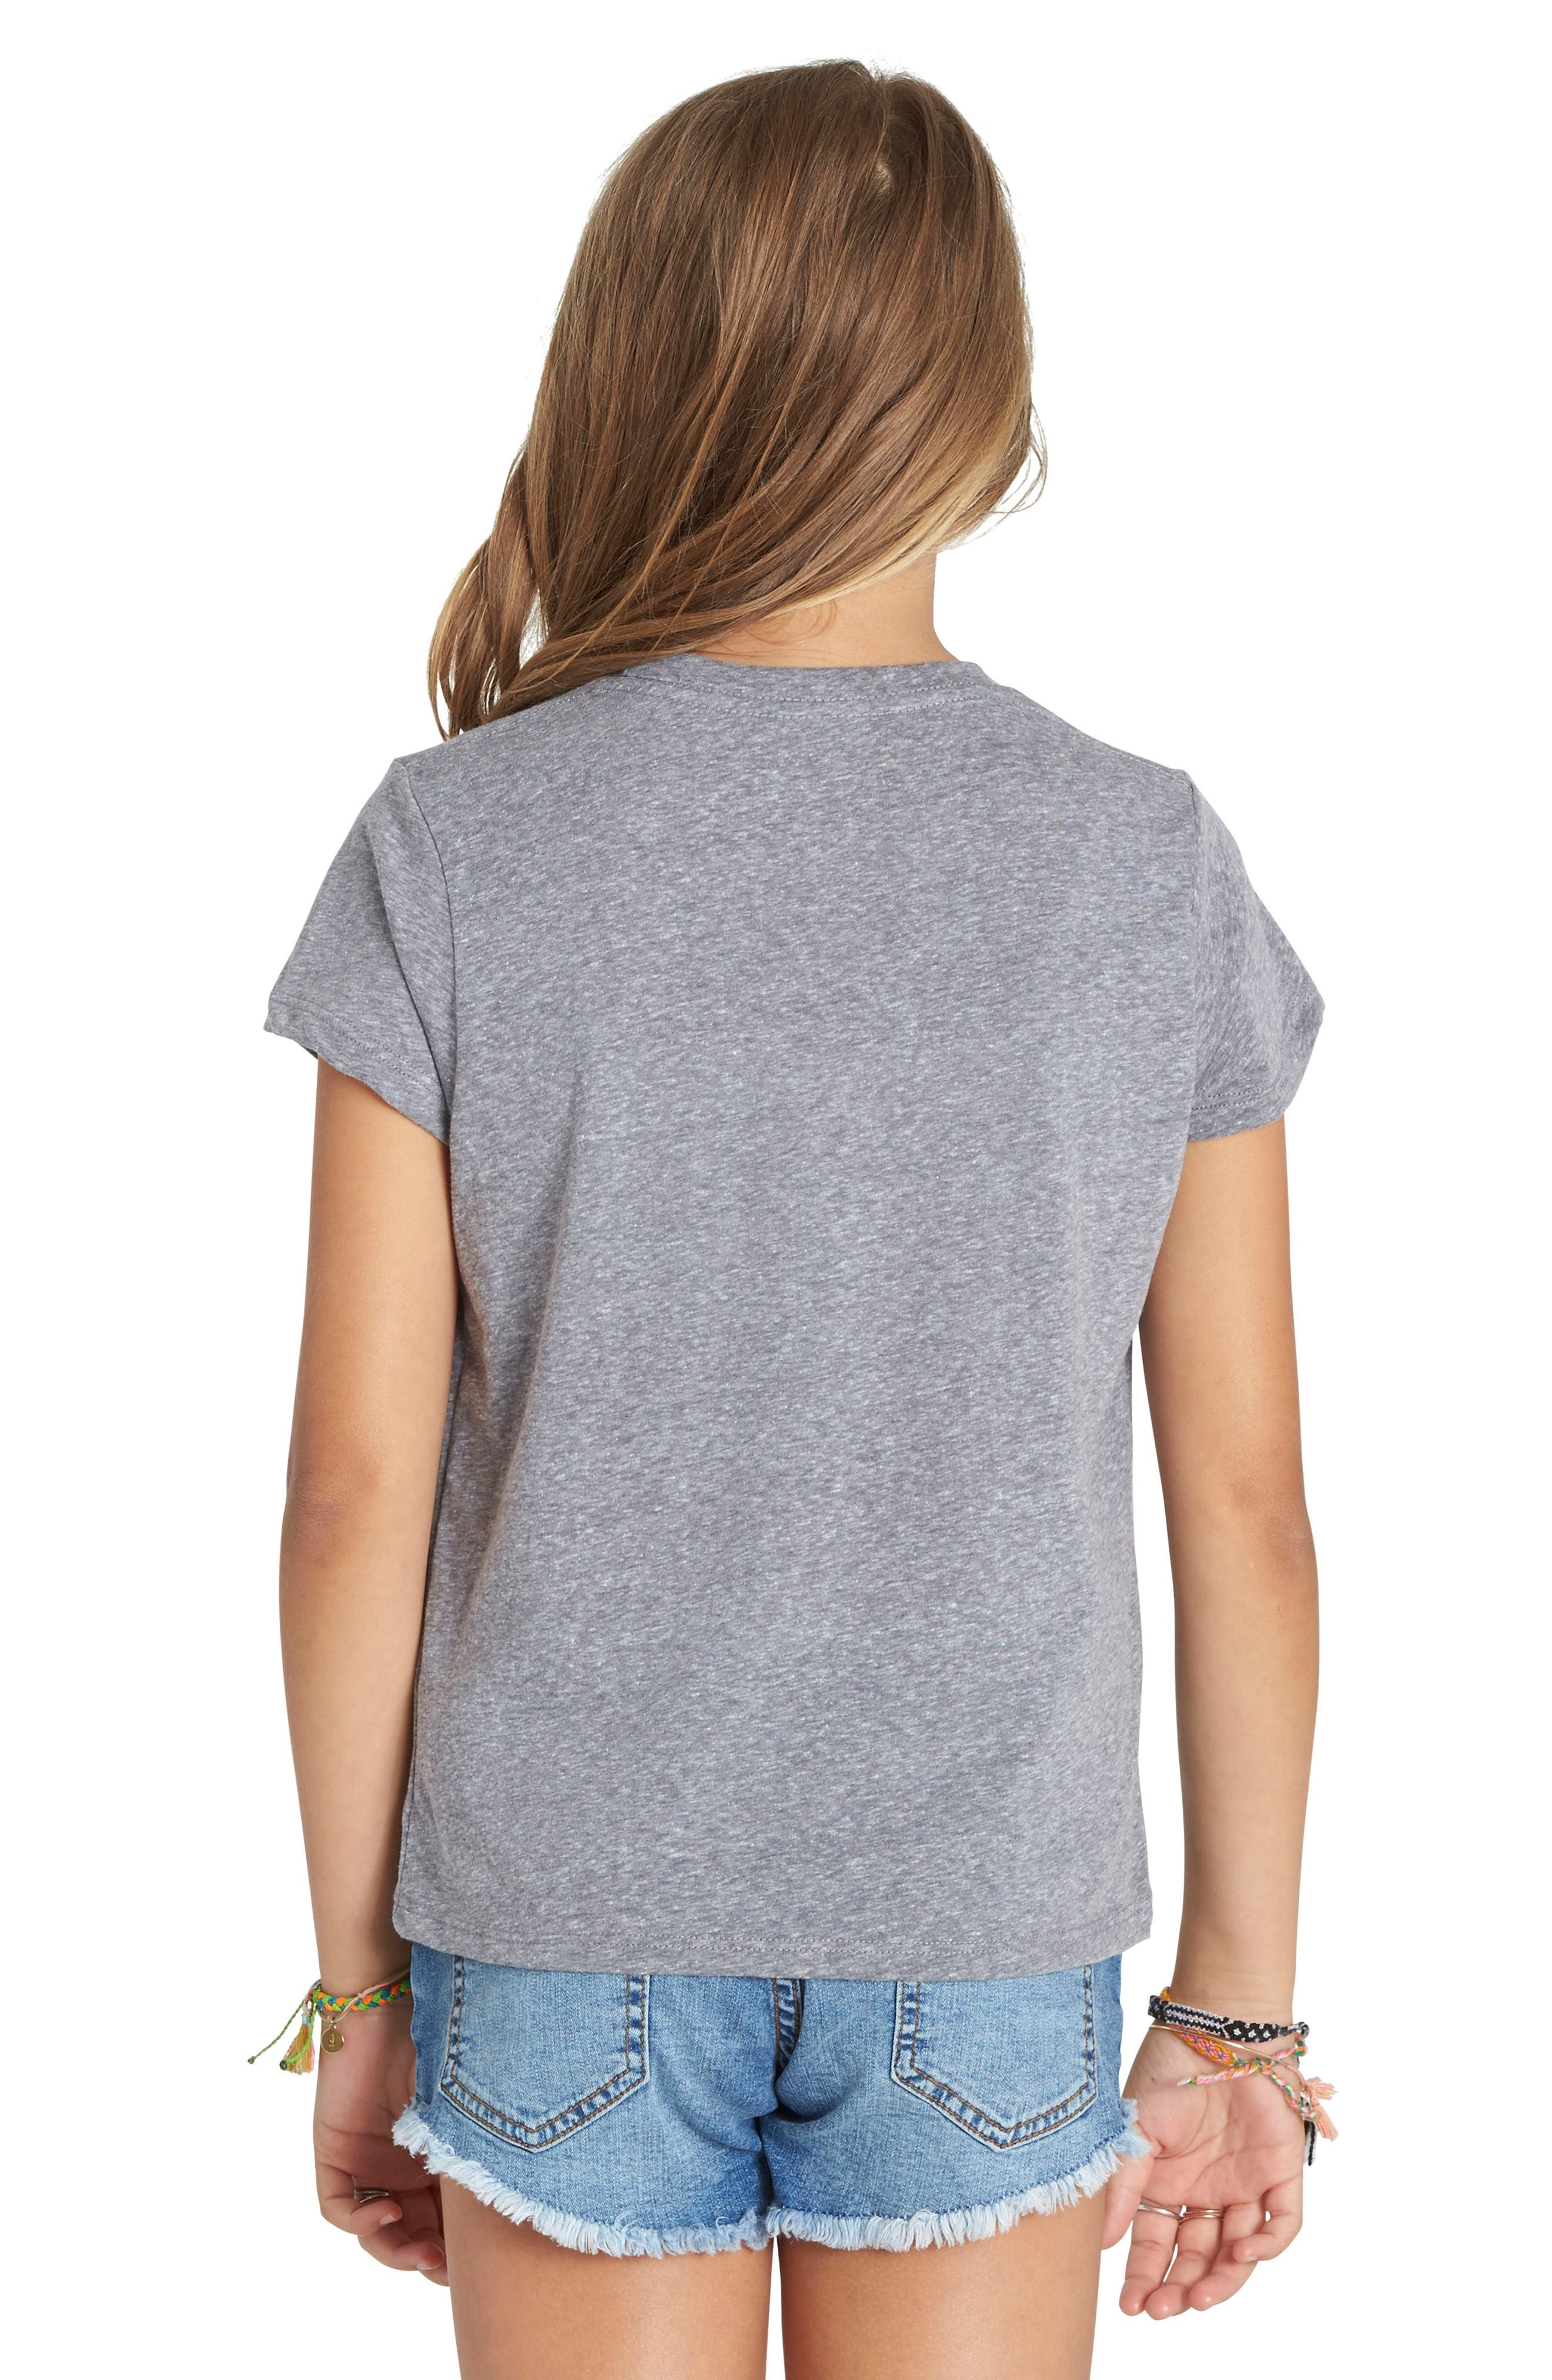 Little Owl Graphic Tee,                             Alternate thumbnail 2, color,                             052